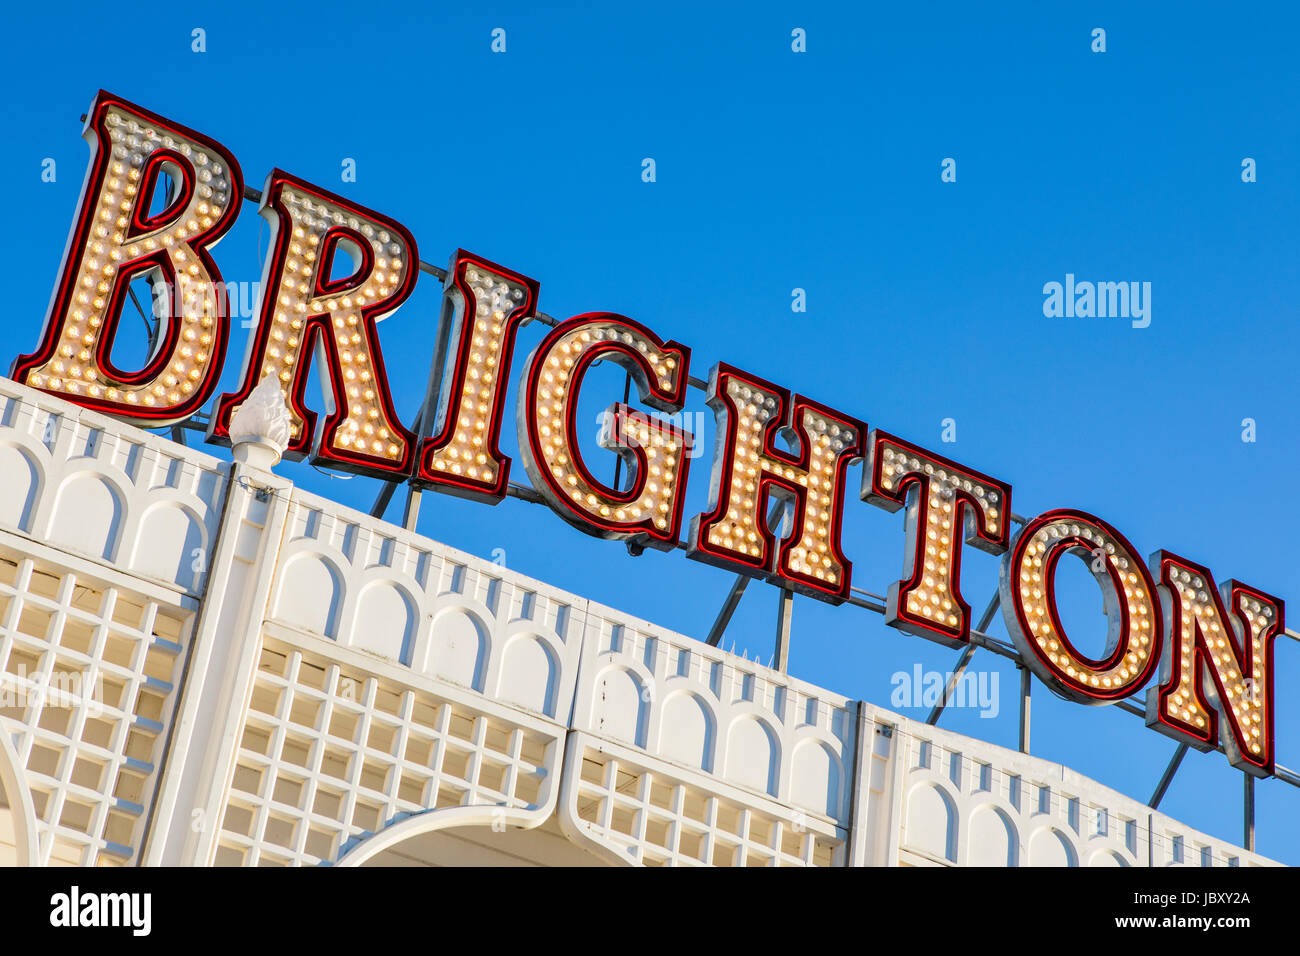 BRIGHTON, UK - MAY 31ST 2017: Brighton in lights on the historic Brighton Pier in East Sussex, UK, on 31st May 2017. - Stock Image